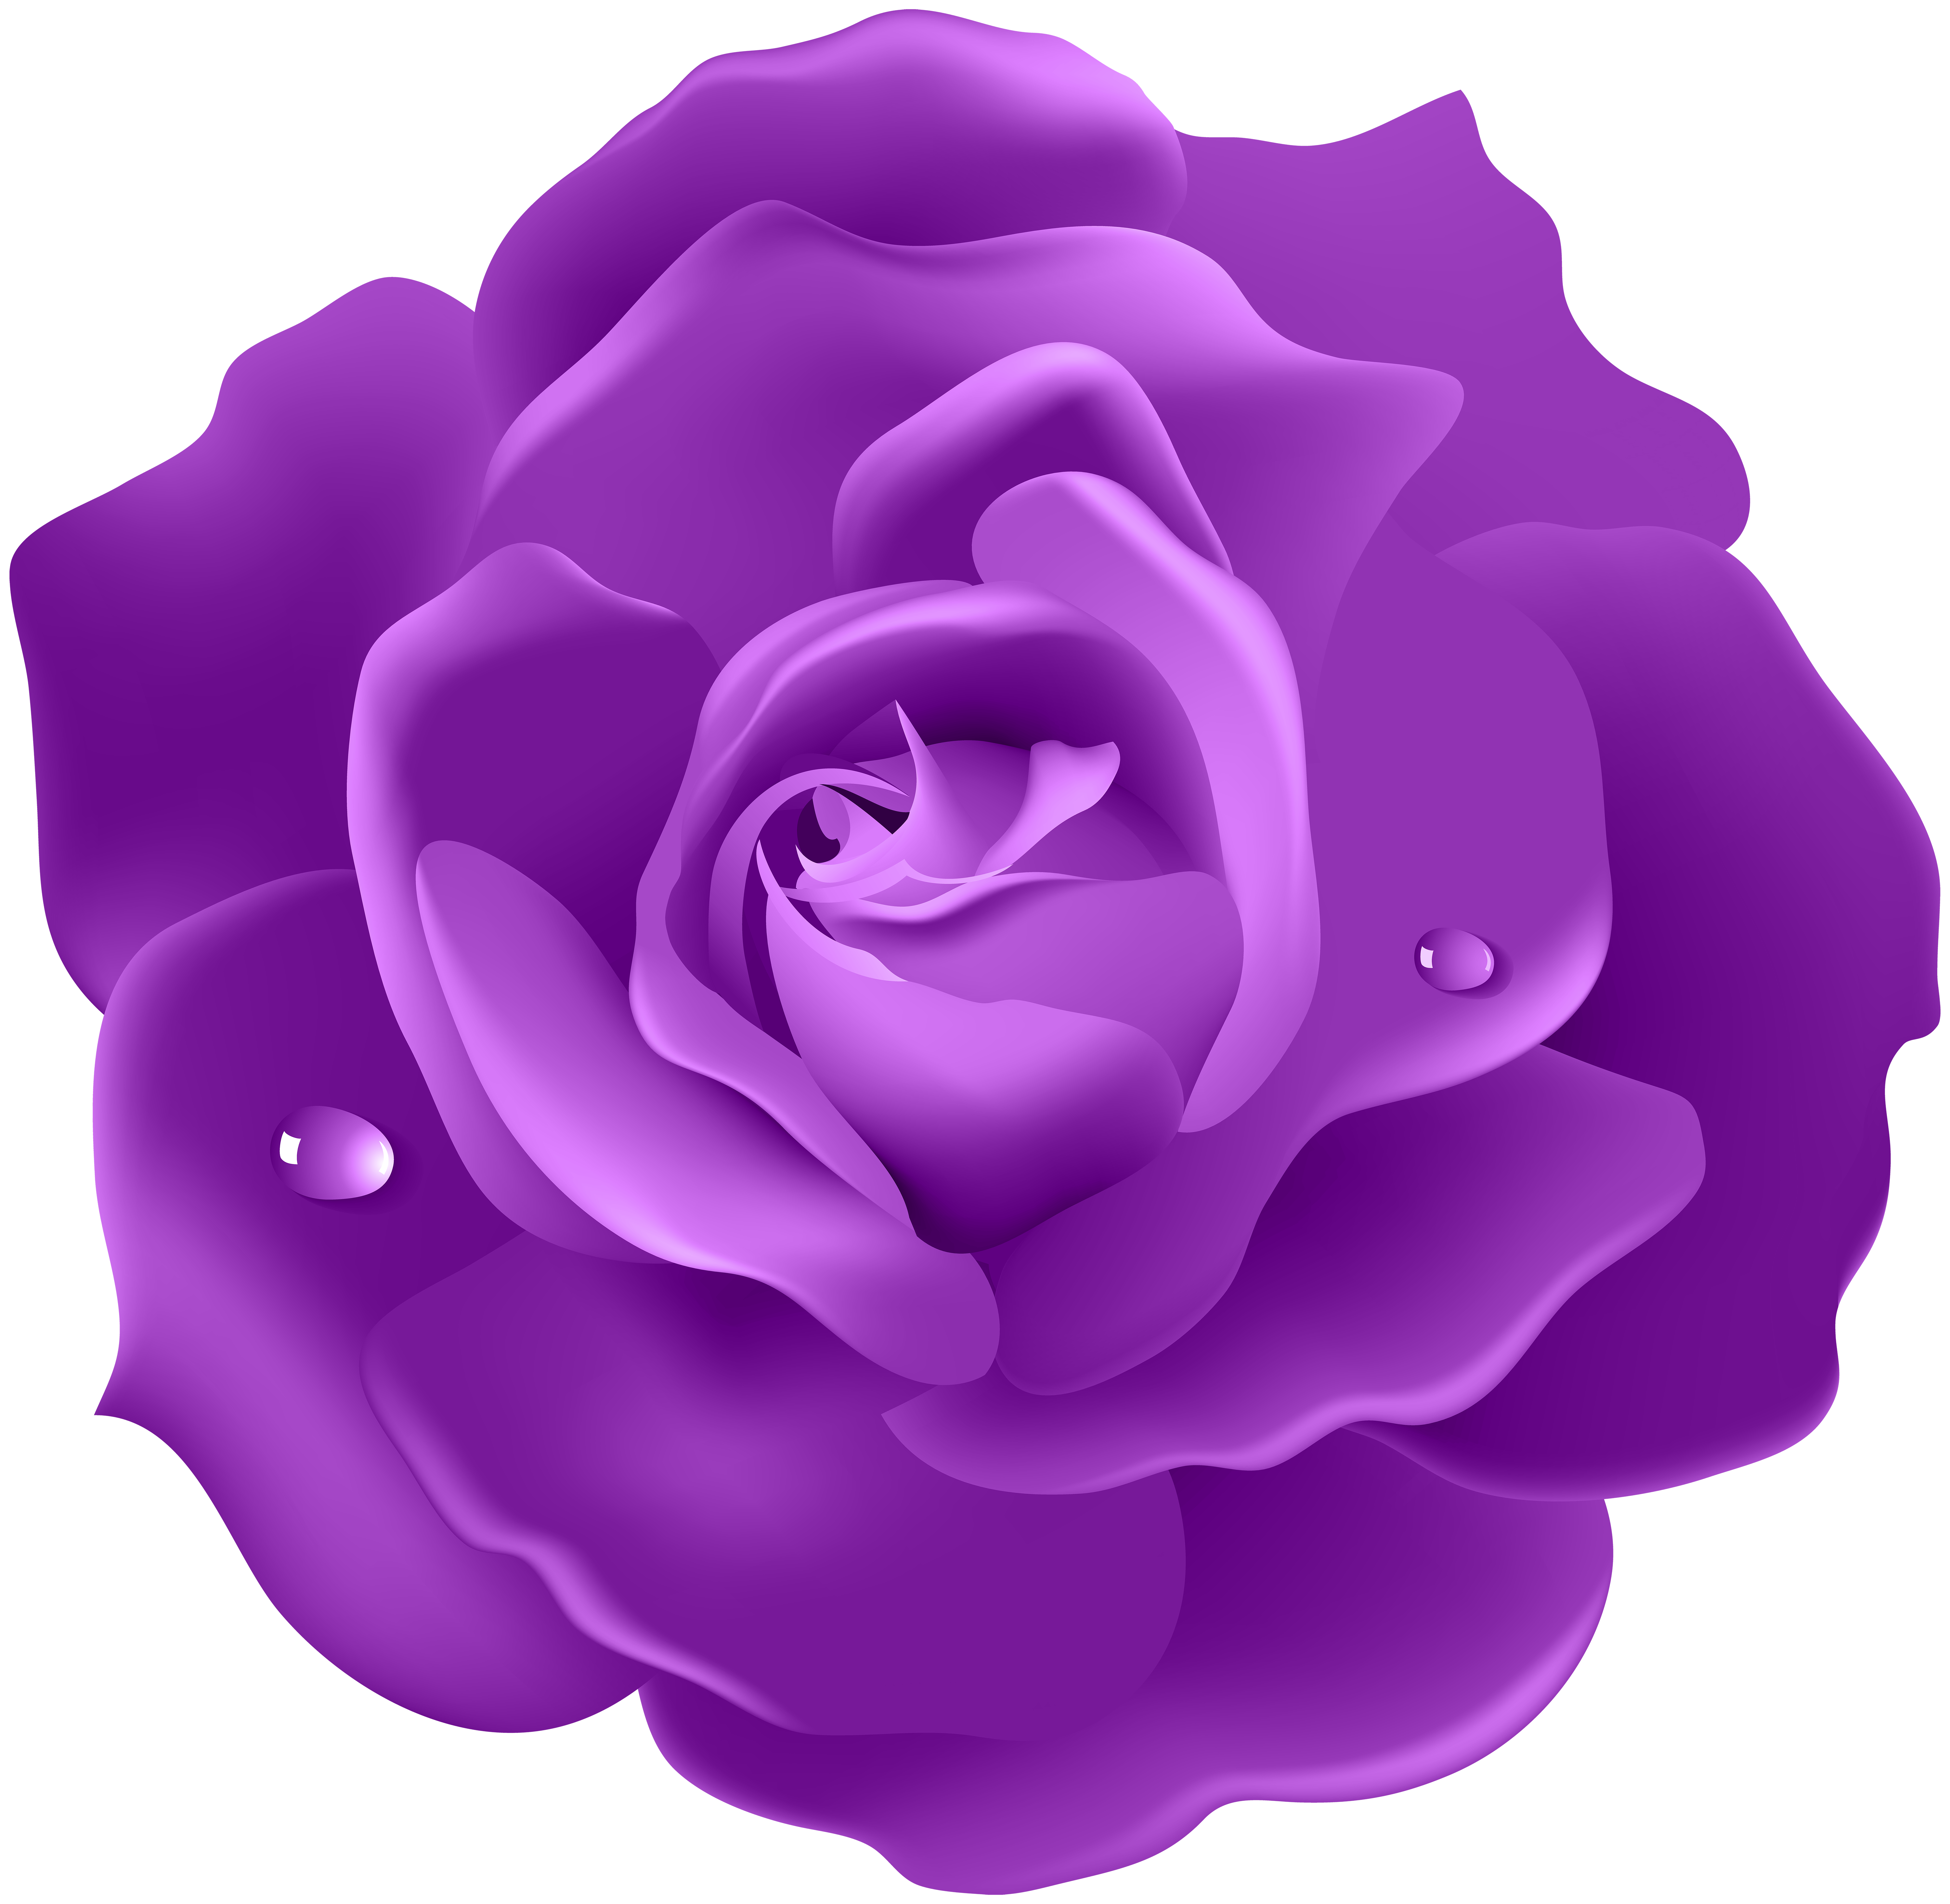 Violet Rose Png - Purple Rose PNG Image   Gallery Yopriceville - High-Quality ...